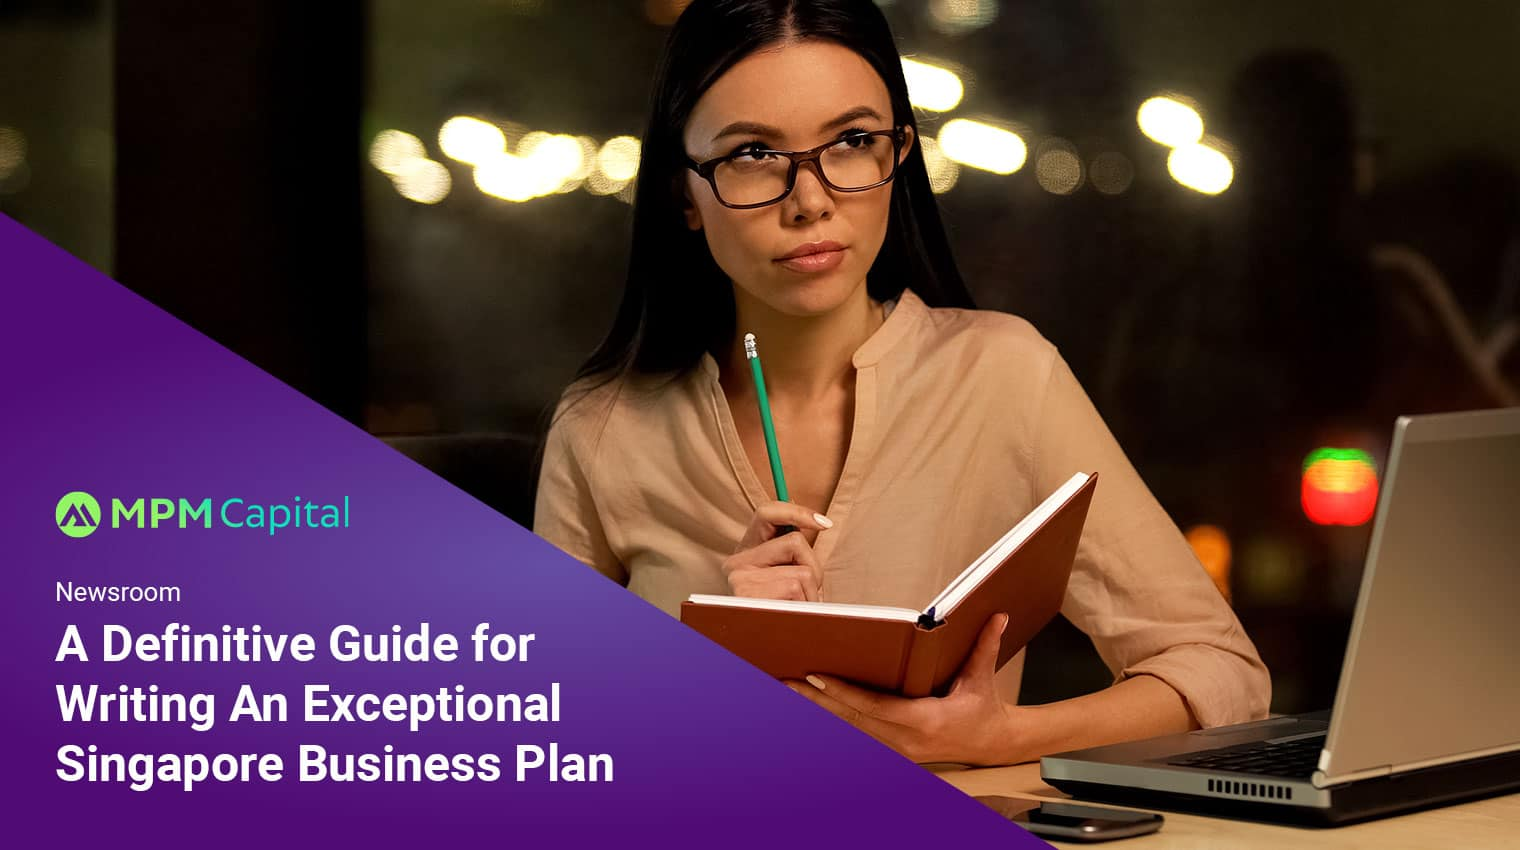 A Definitive Guide for Writing An Exceptional Singapore Business Plan